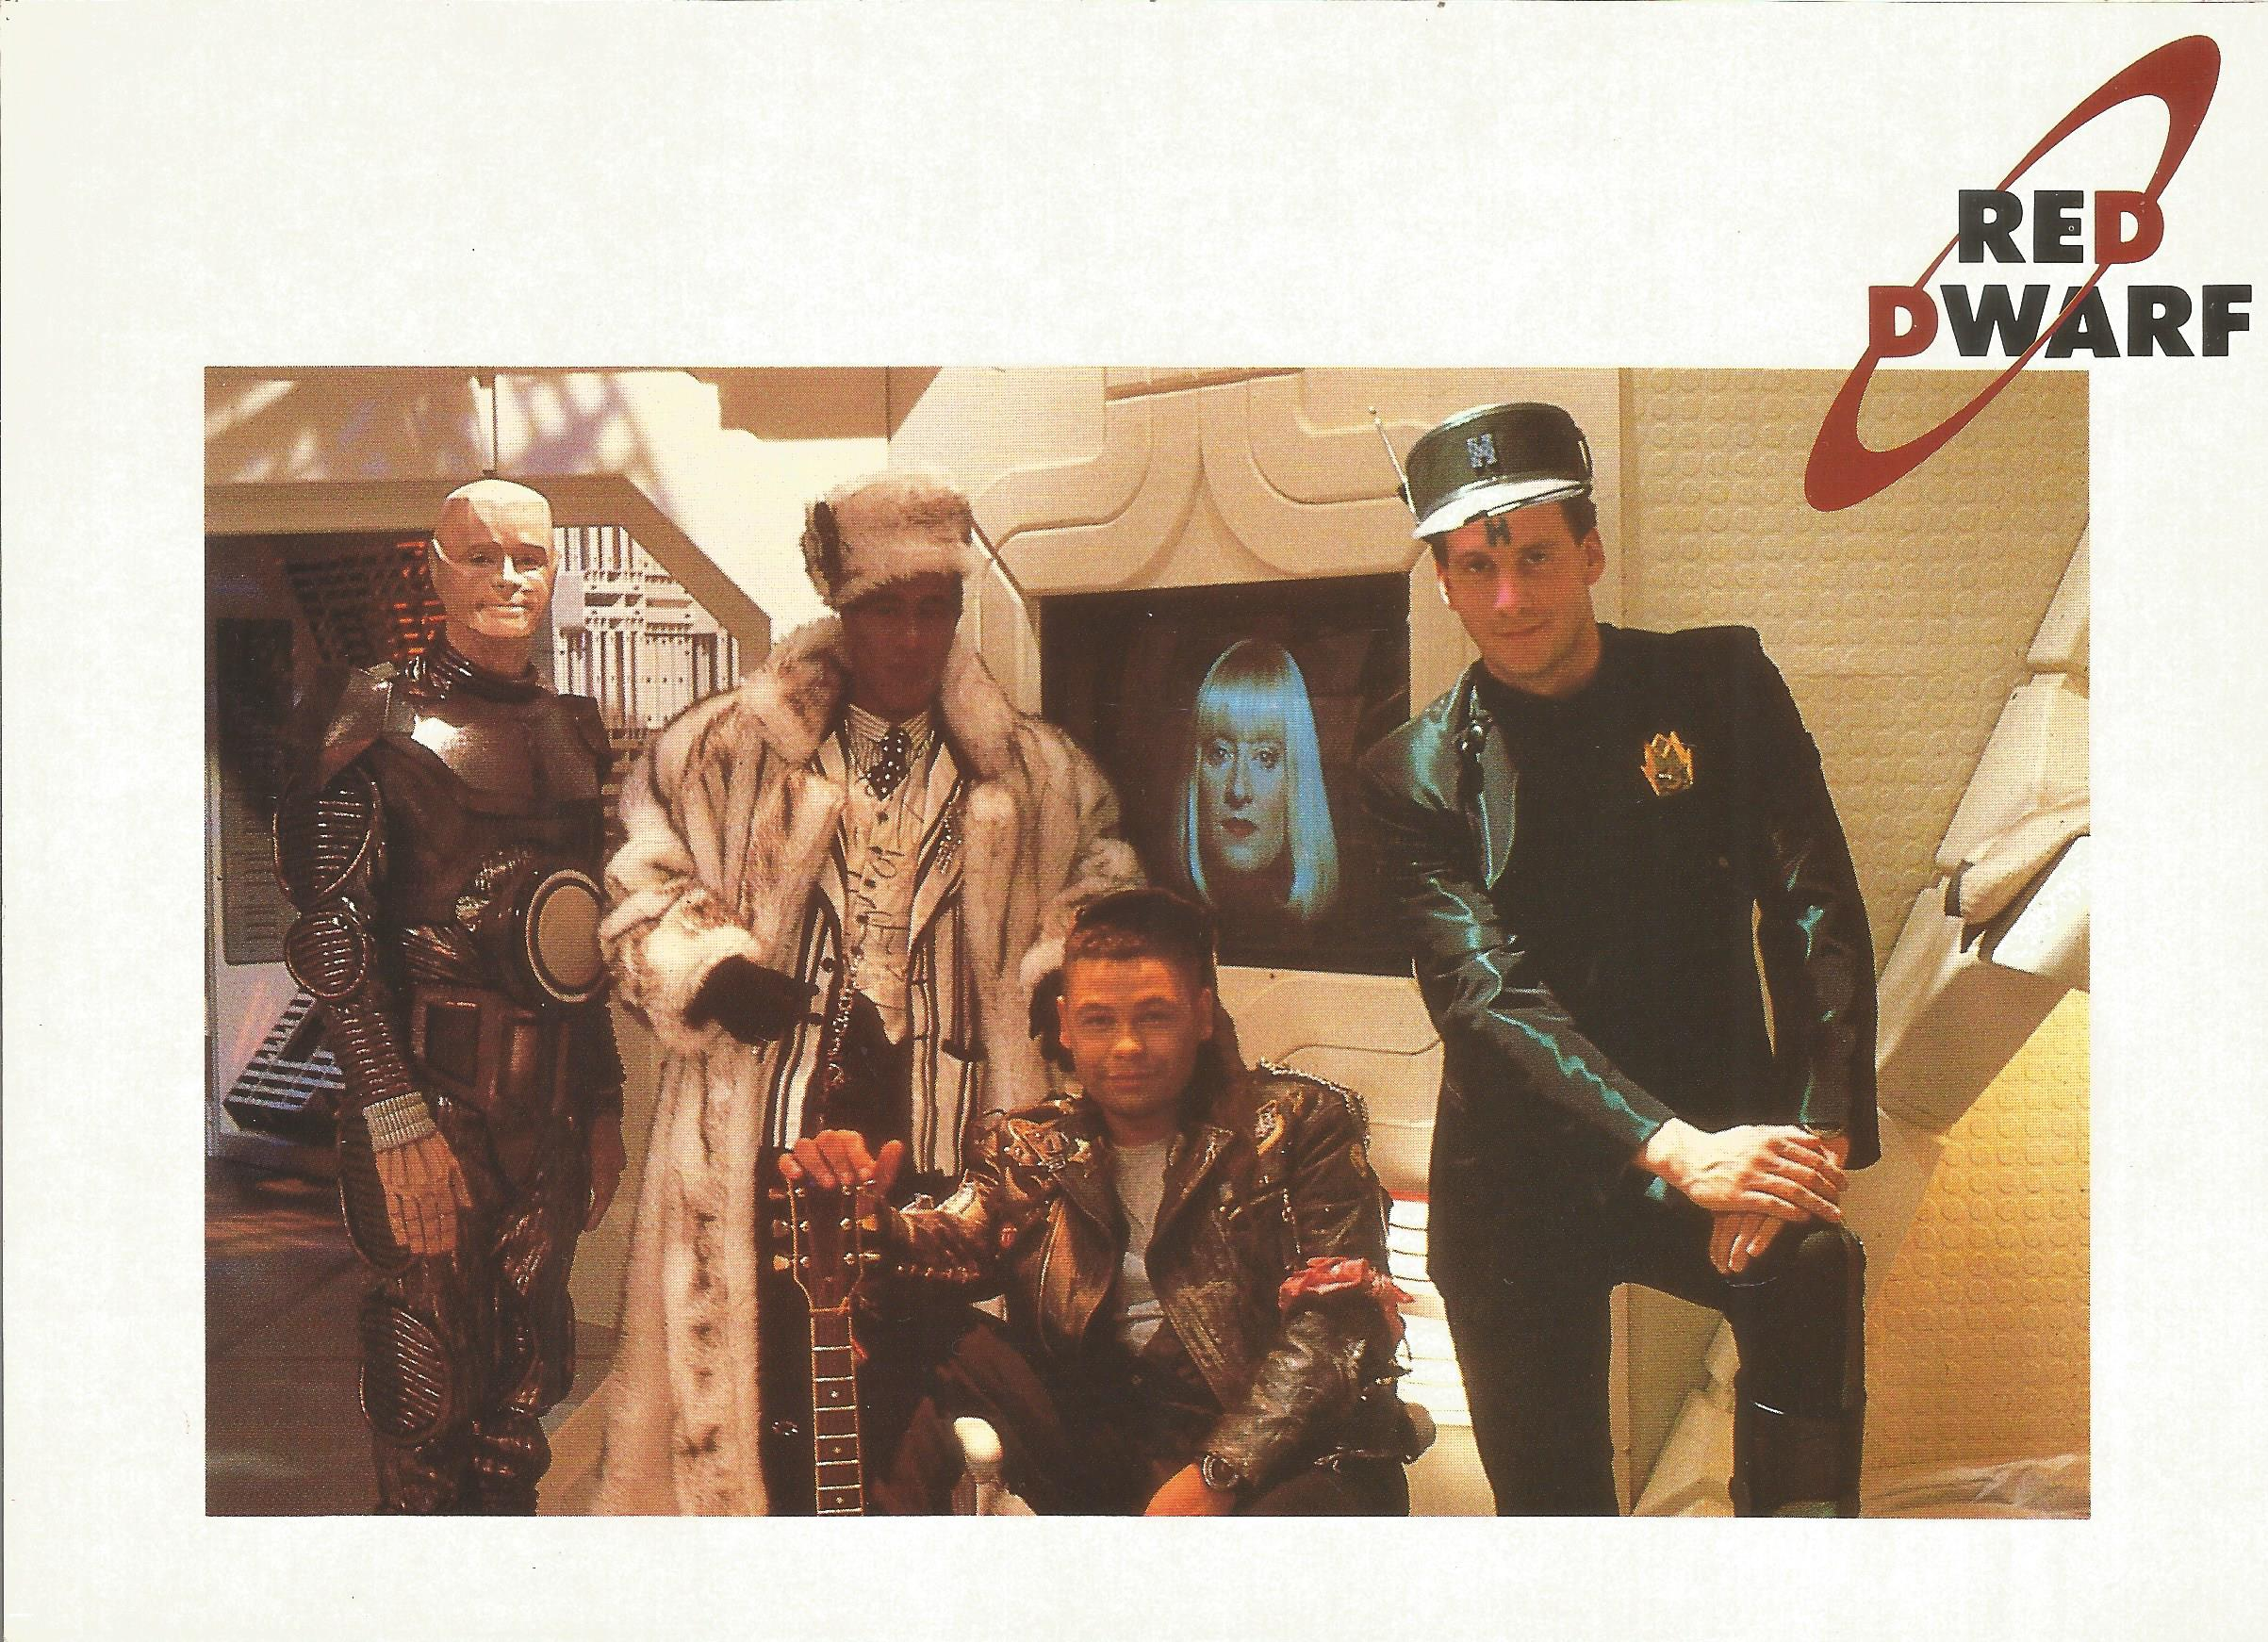 Robert Llewellyn signed 7x5 Red Dwarf colour photo inscribed on the reverse. Robert Llewellyn (